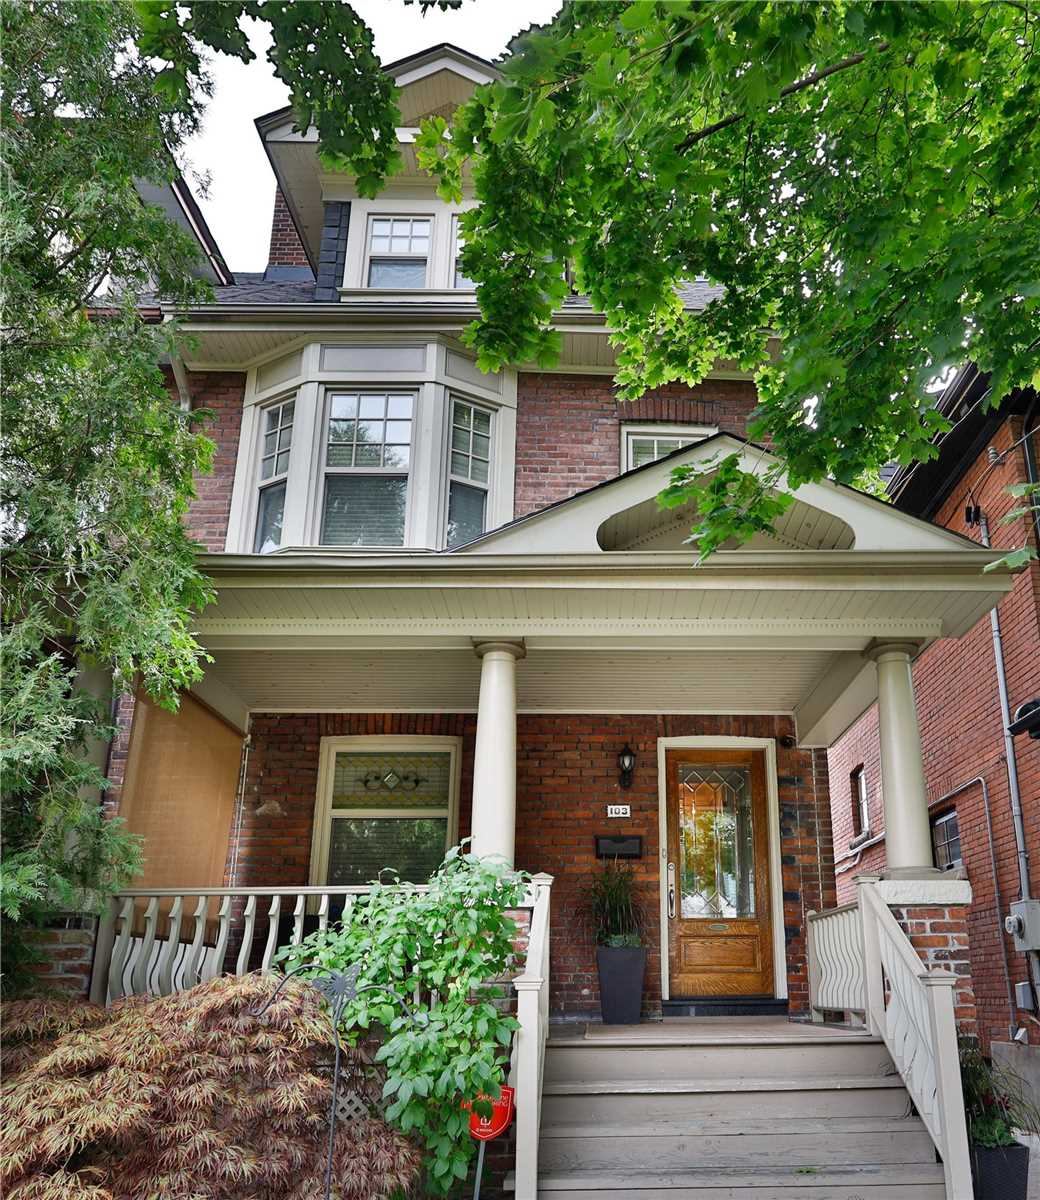 103 Delaware Ave, Toronto, Ontario M6H2S9, 4 Bedrooms Bedrooms, 8 Rooms Rooms,4 BathroomsBathrooms,Semi-detached,For Sale,Delaware,C4907715